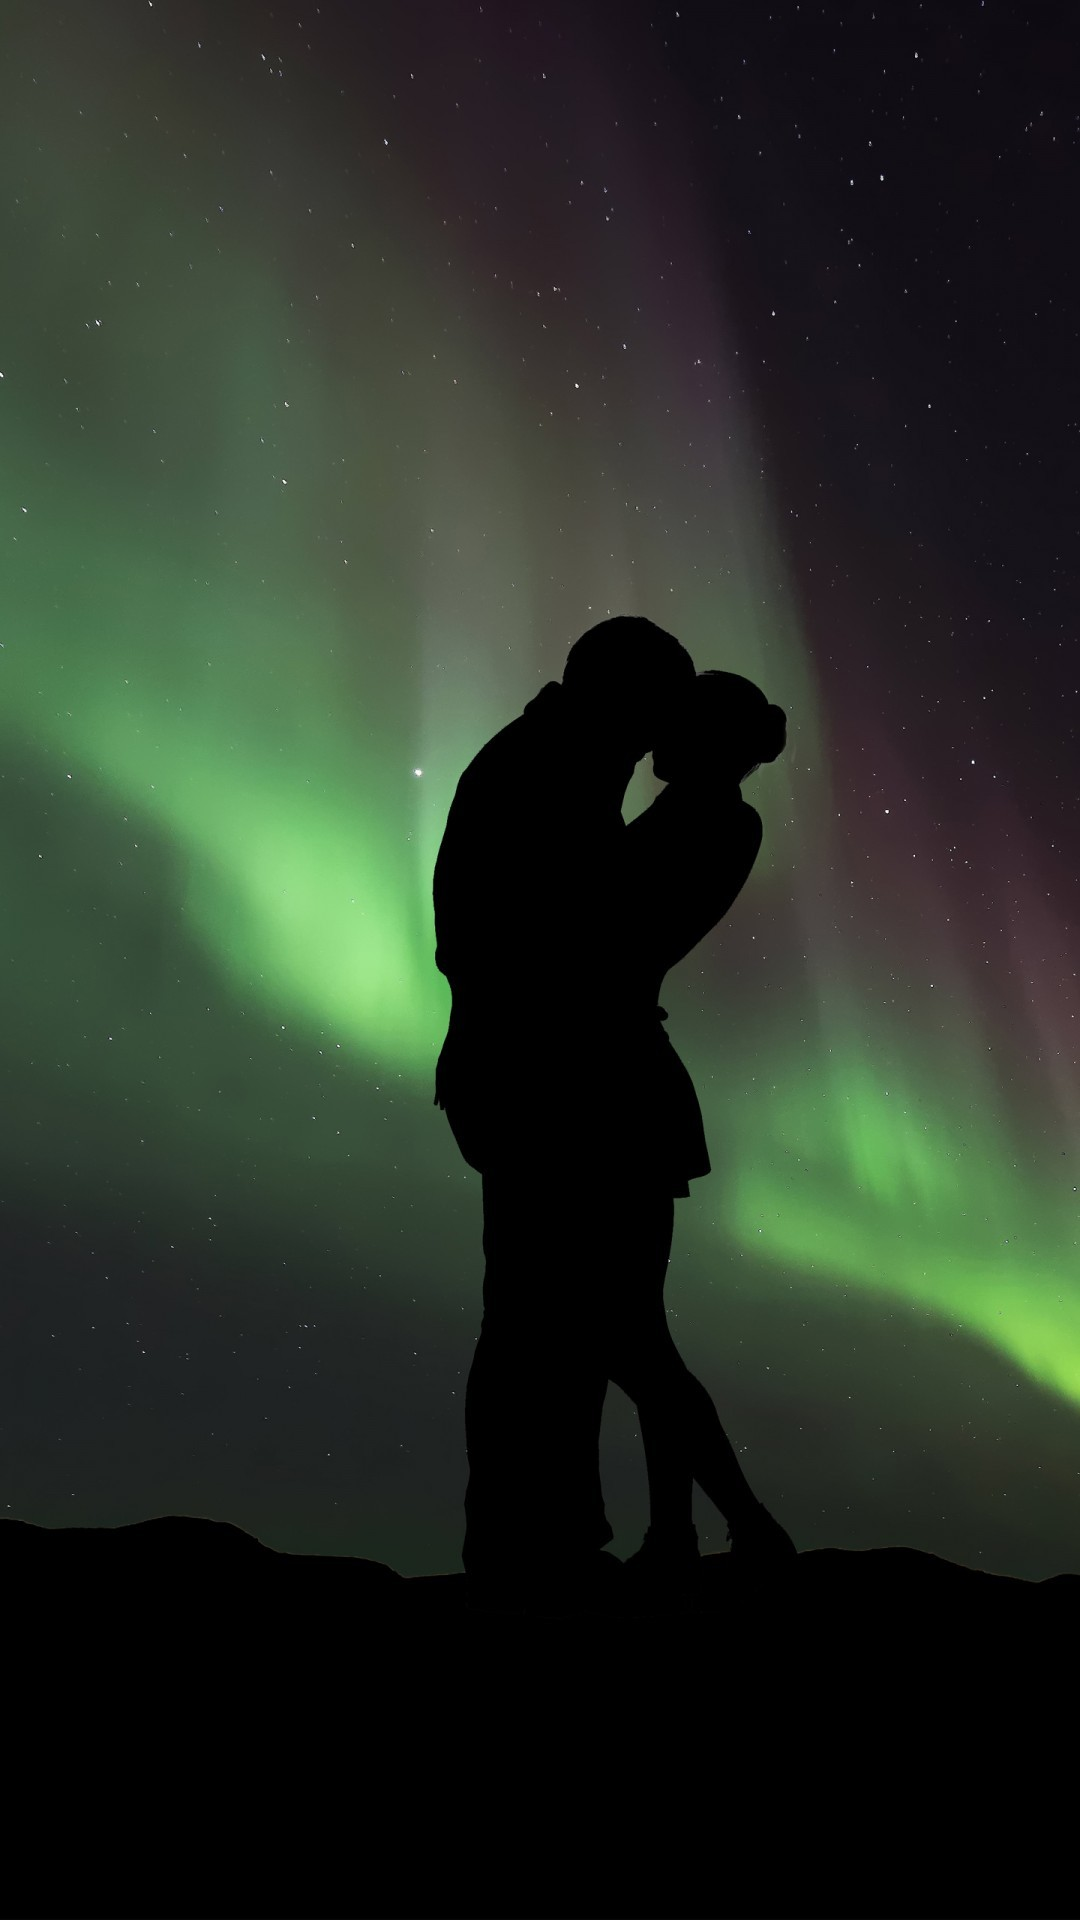 Free Couple Silhouette Northern Lights phone wallpaper by jamesisaacnewtron